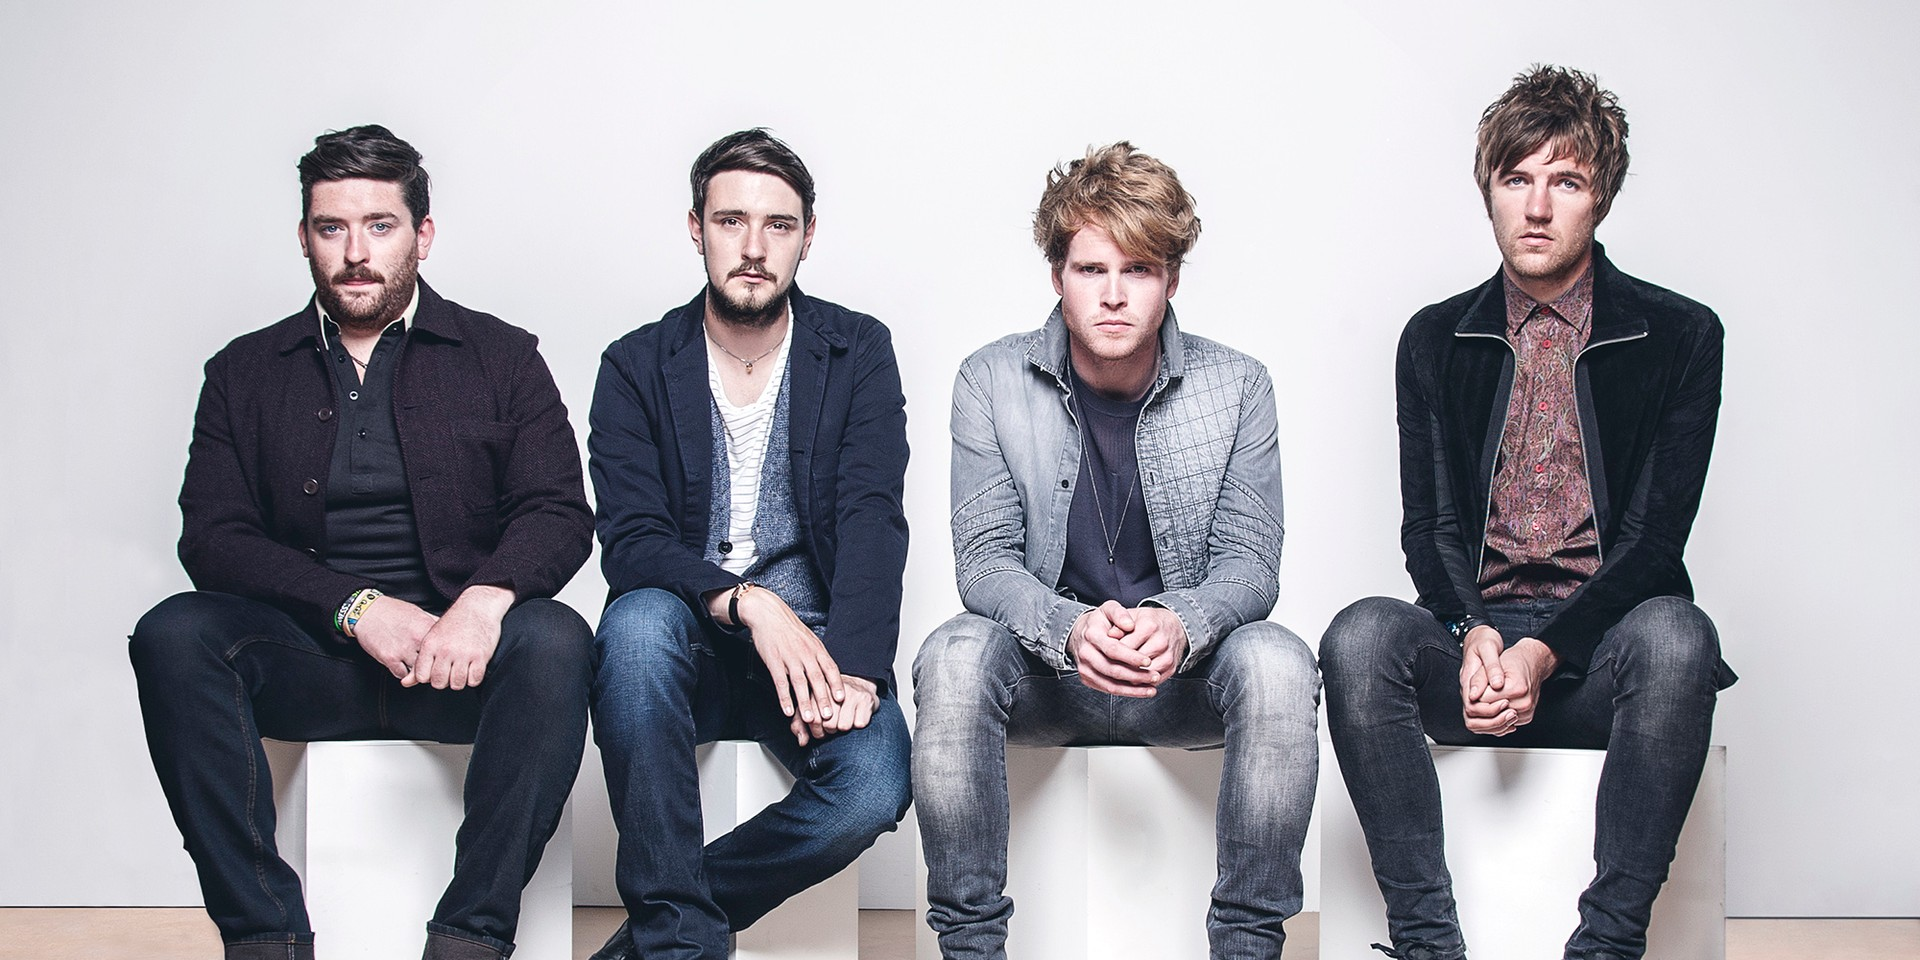 Kodaline respond to fan questions about touring, songwriting and more